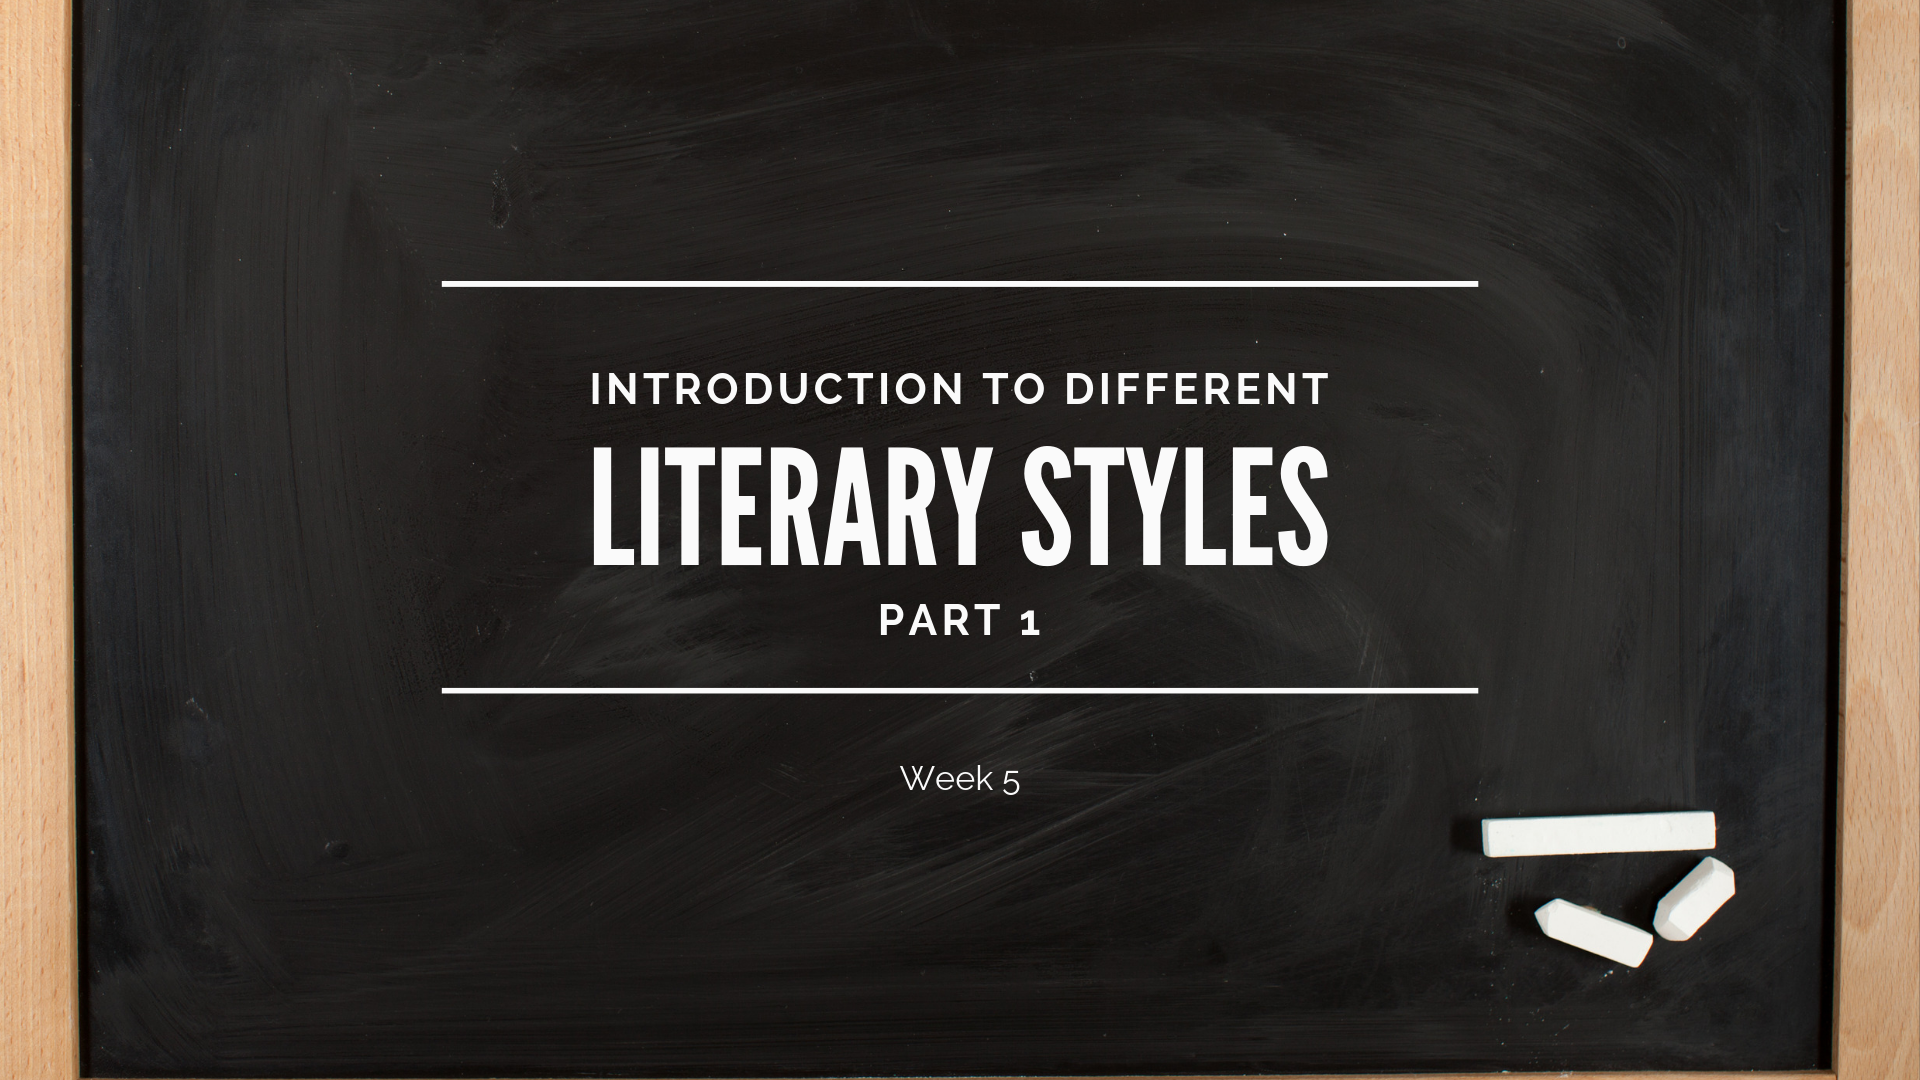 1c40935577de Introduction to Different Literary Styles (pt 1) | Community Church ...